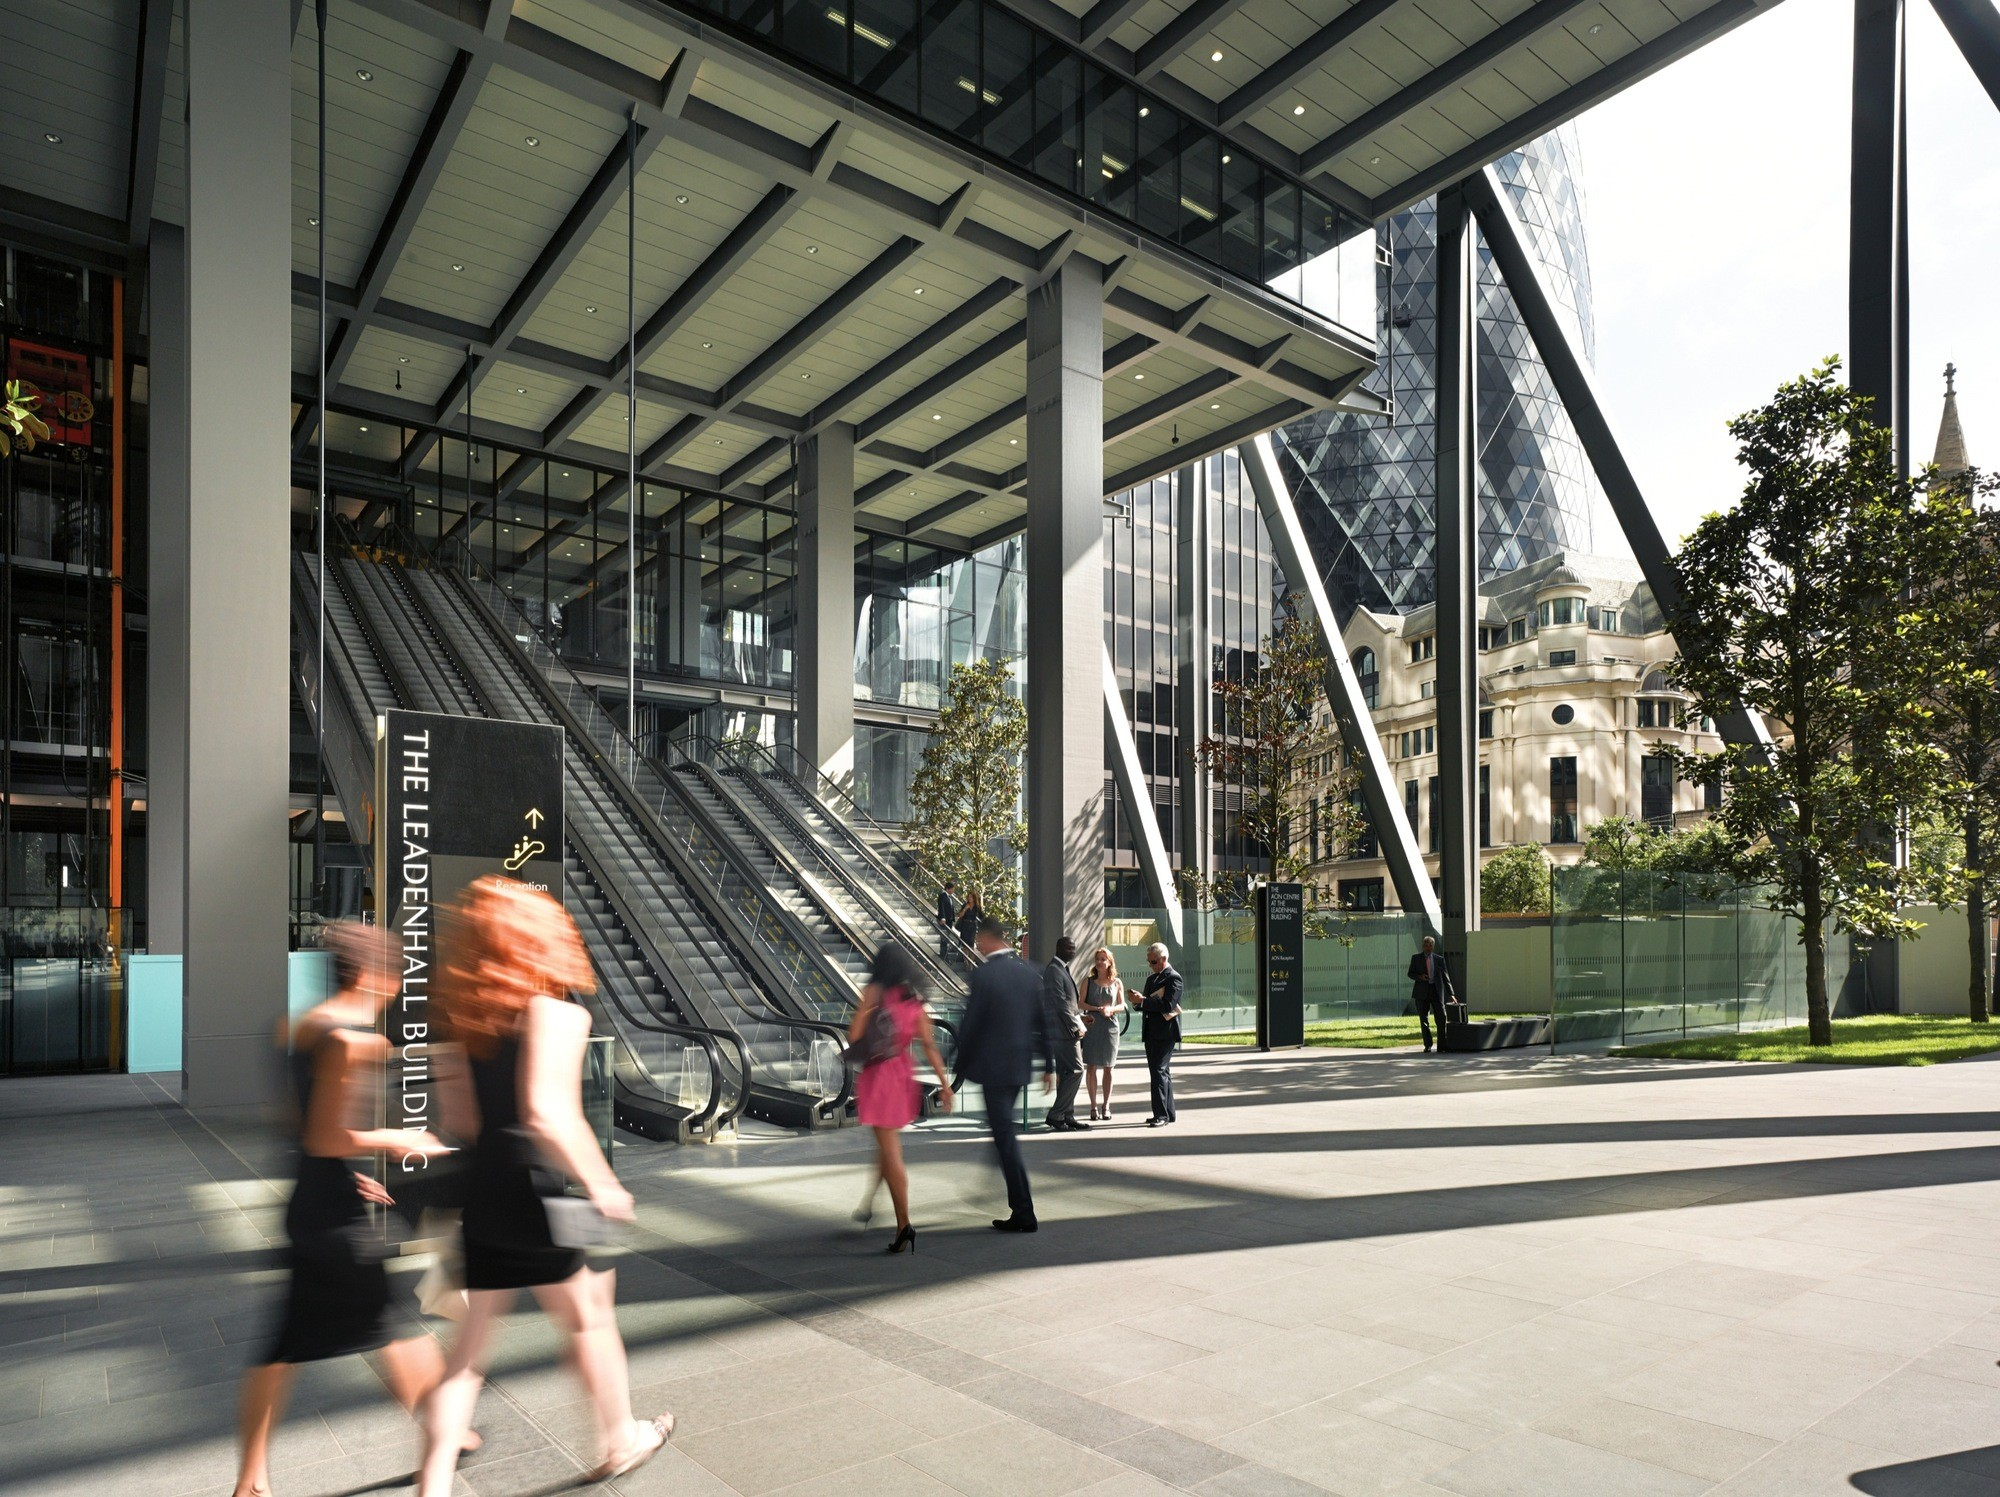 The eastern portion of the ground floor 'lobby' of the Leadenhall Building, as